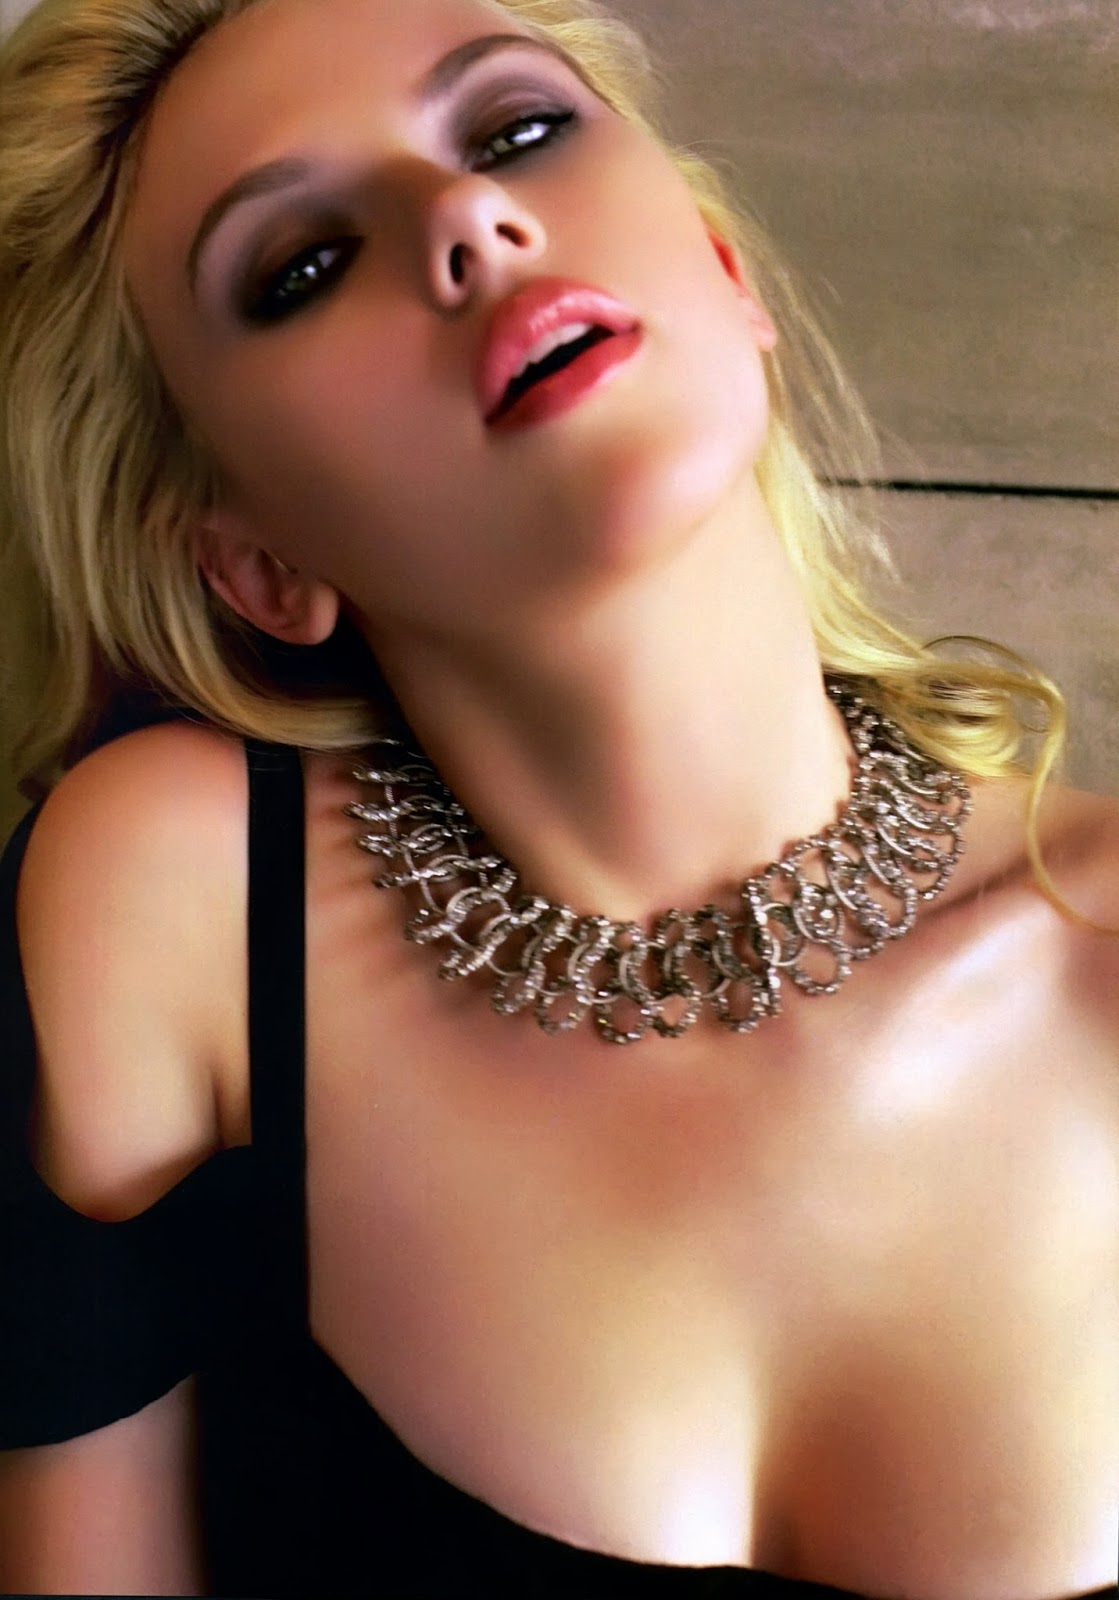 Most Amazing Facts About Scarlett Johansson Is Sexiest Women In The